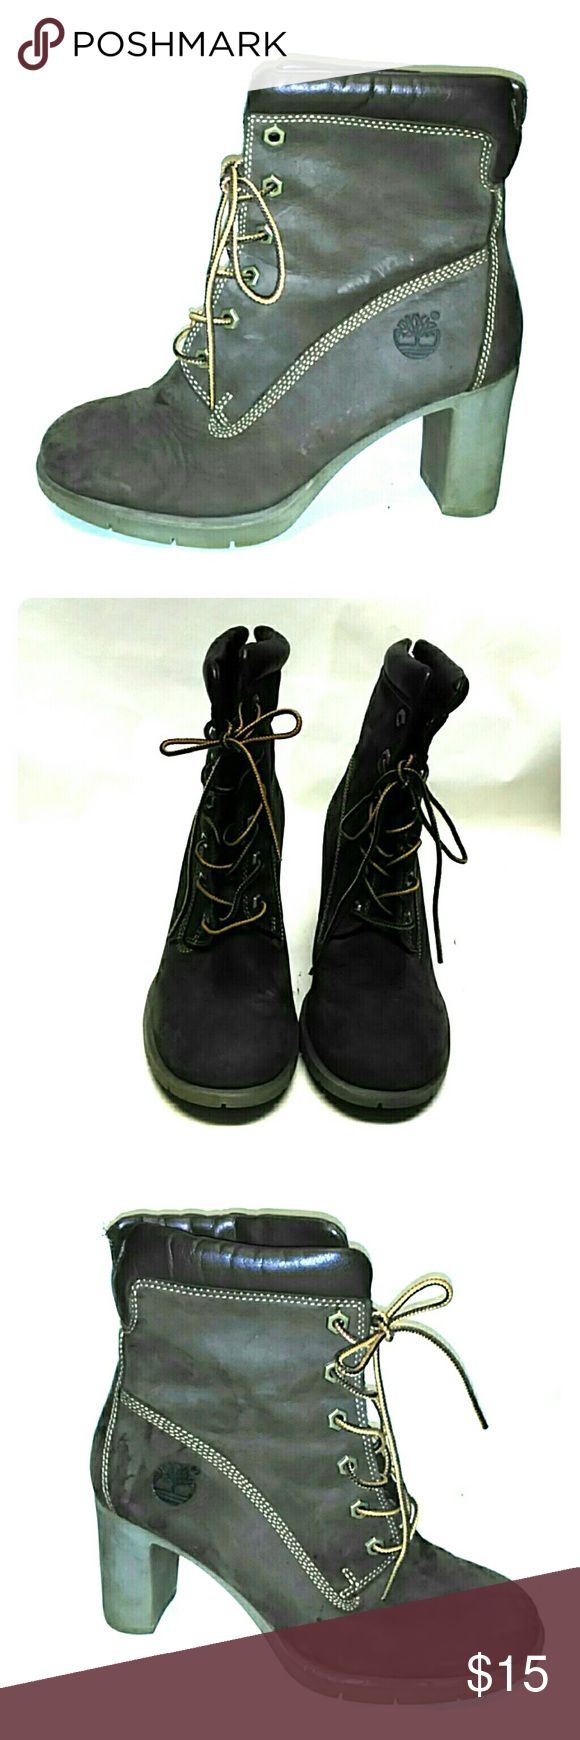 Timberland Women's Brown Heels Boots Lace Up Very cute some scuffs pictured Timberland Shoes Heeled Boots